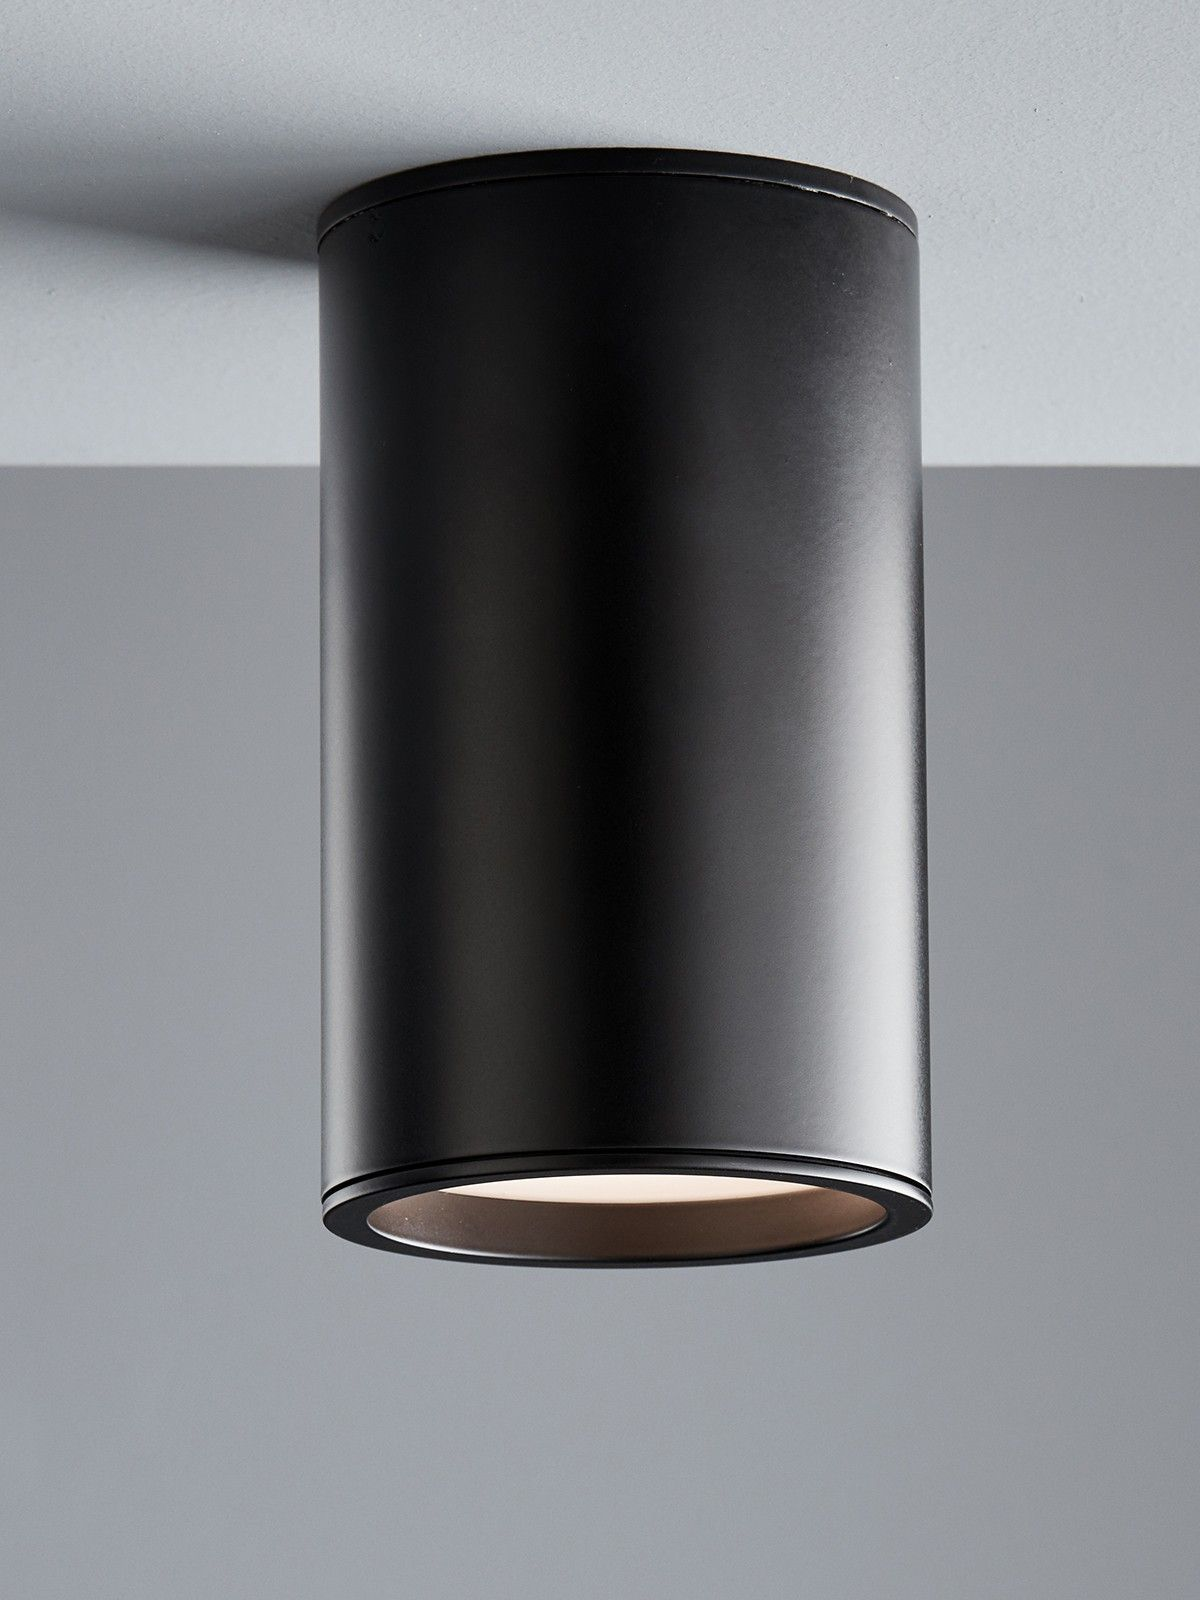 Ledlux Surface 150mm Dimmable Surface Mounted Downlight In Black Downlights Pillar Lights Interior Lighting